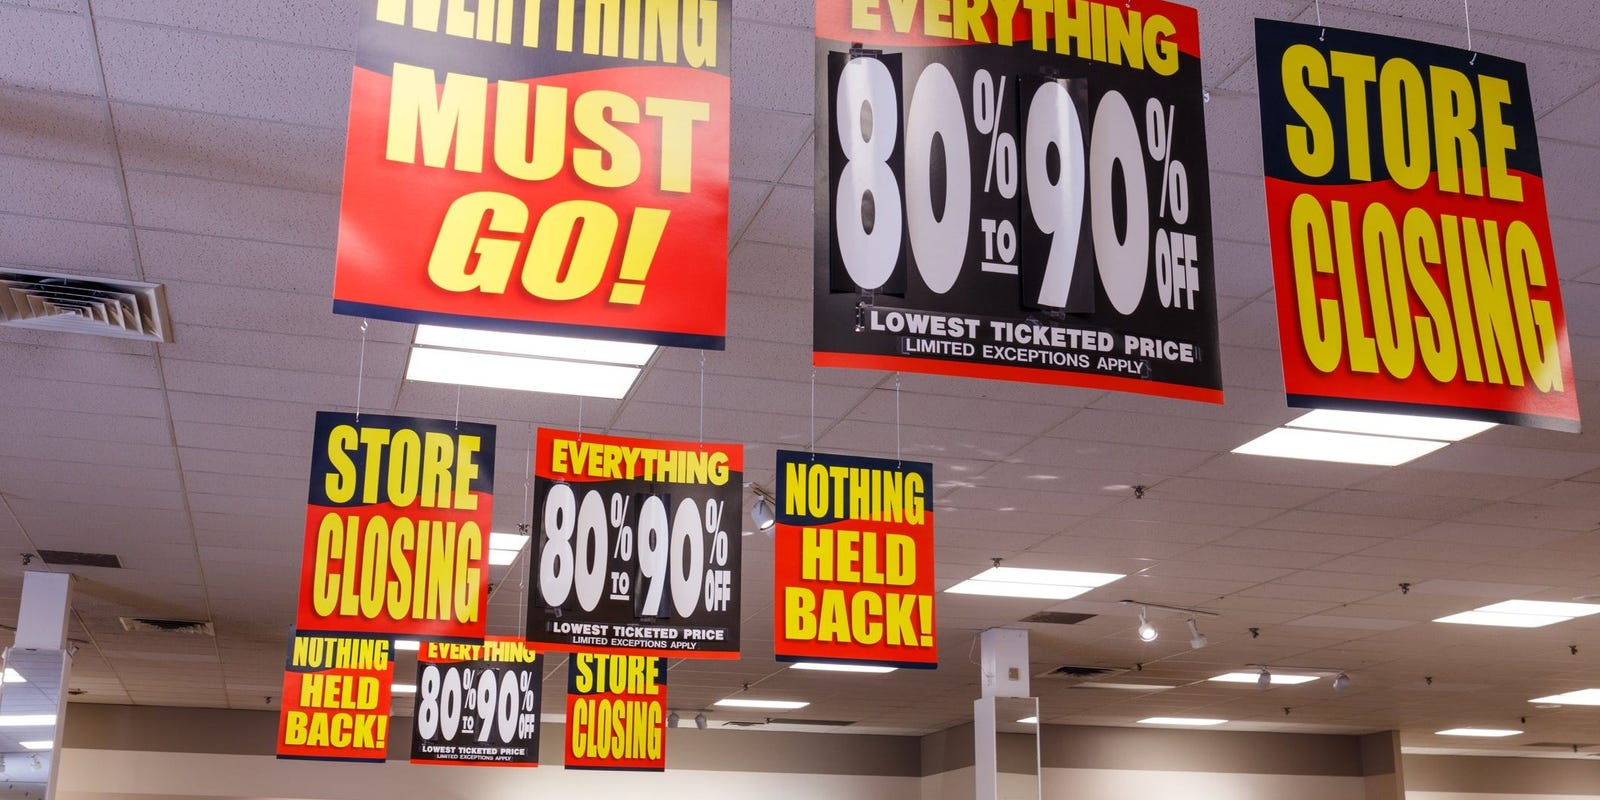 Retailer files Chapter 11 bankruptcy